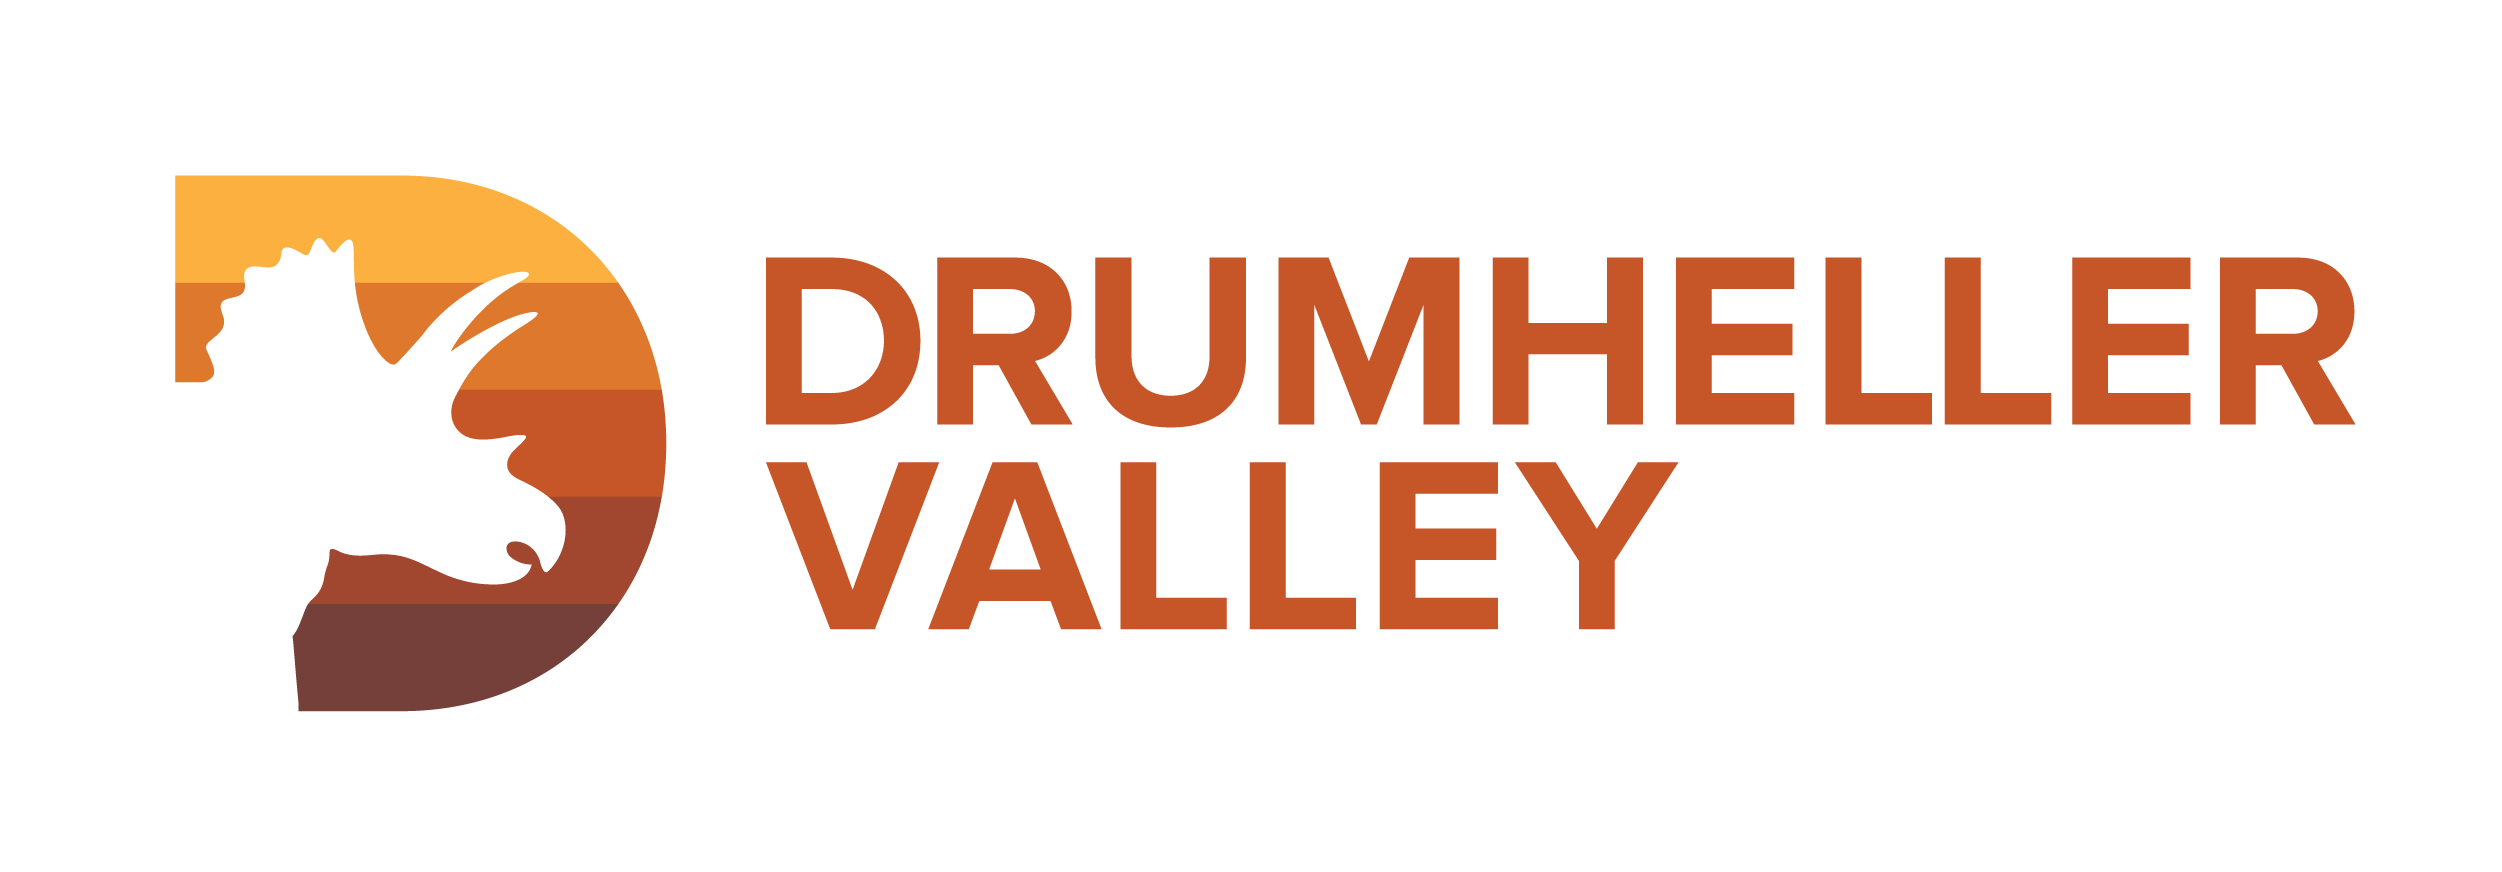 Drumheller Valley Logo VI